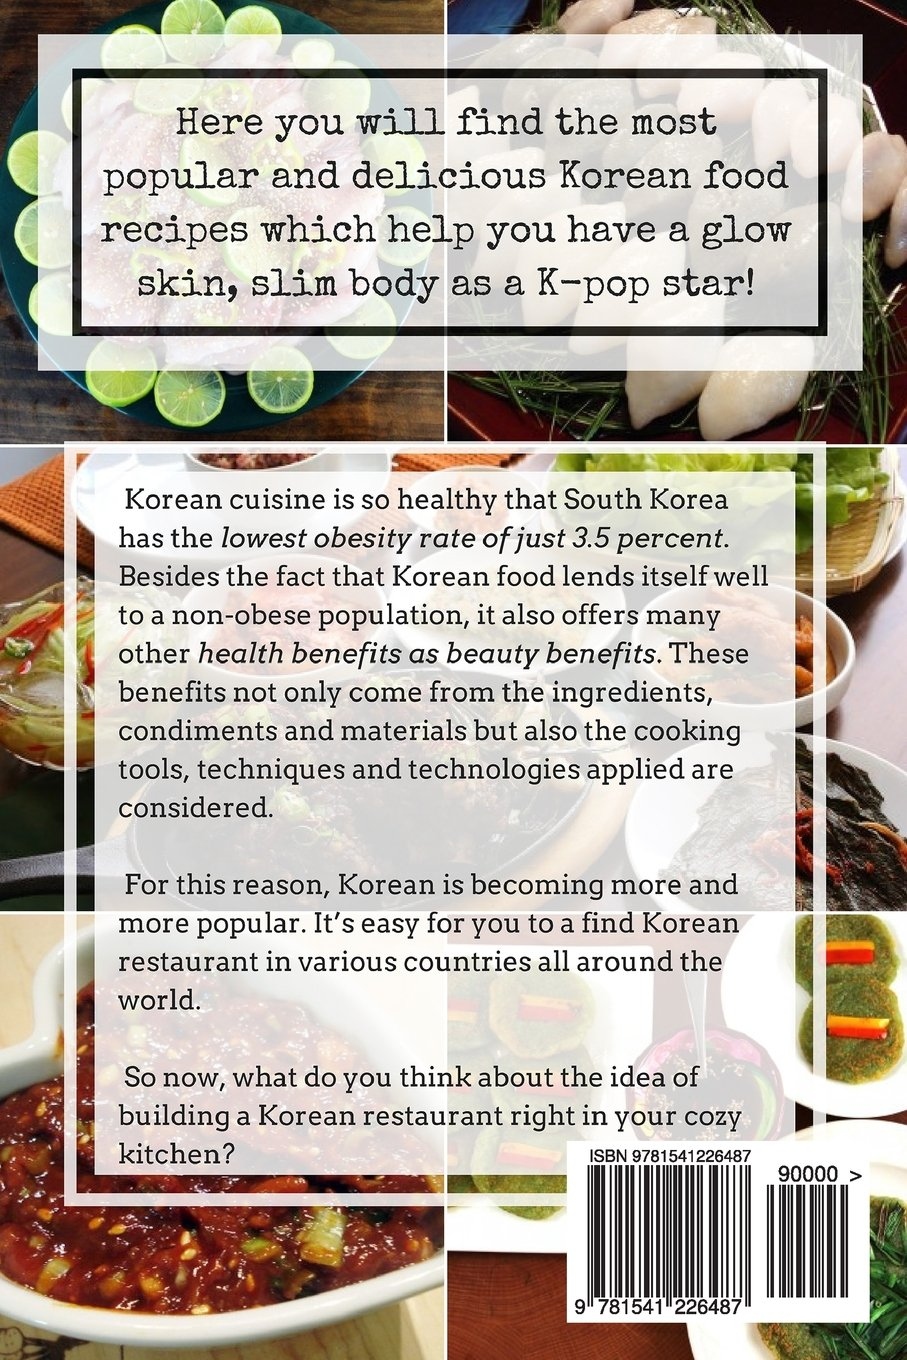 Amazon welcome to korean food world unlock every secret of amazon welcome to korean food world unlock every secret of cooking through 500 amazing korean recipes korean cookbook korean cuisine korean cooking forumfinder Choice Image